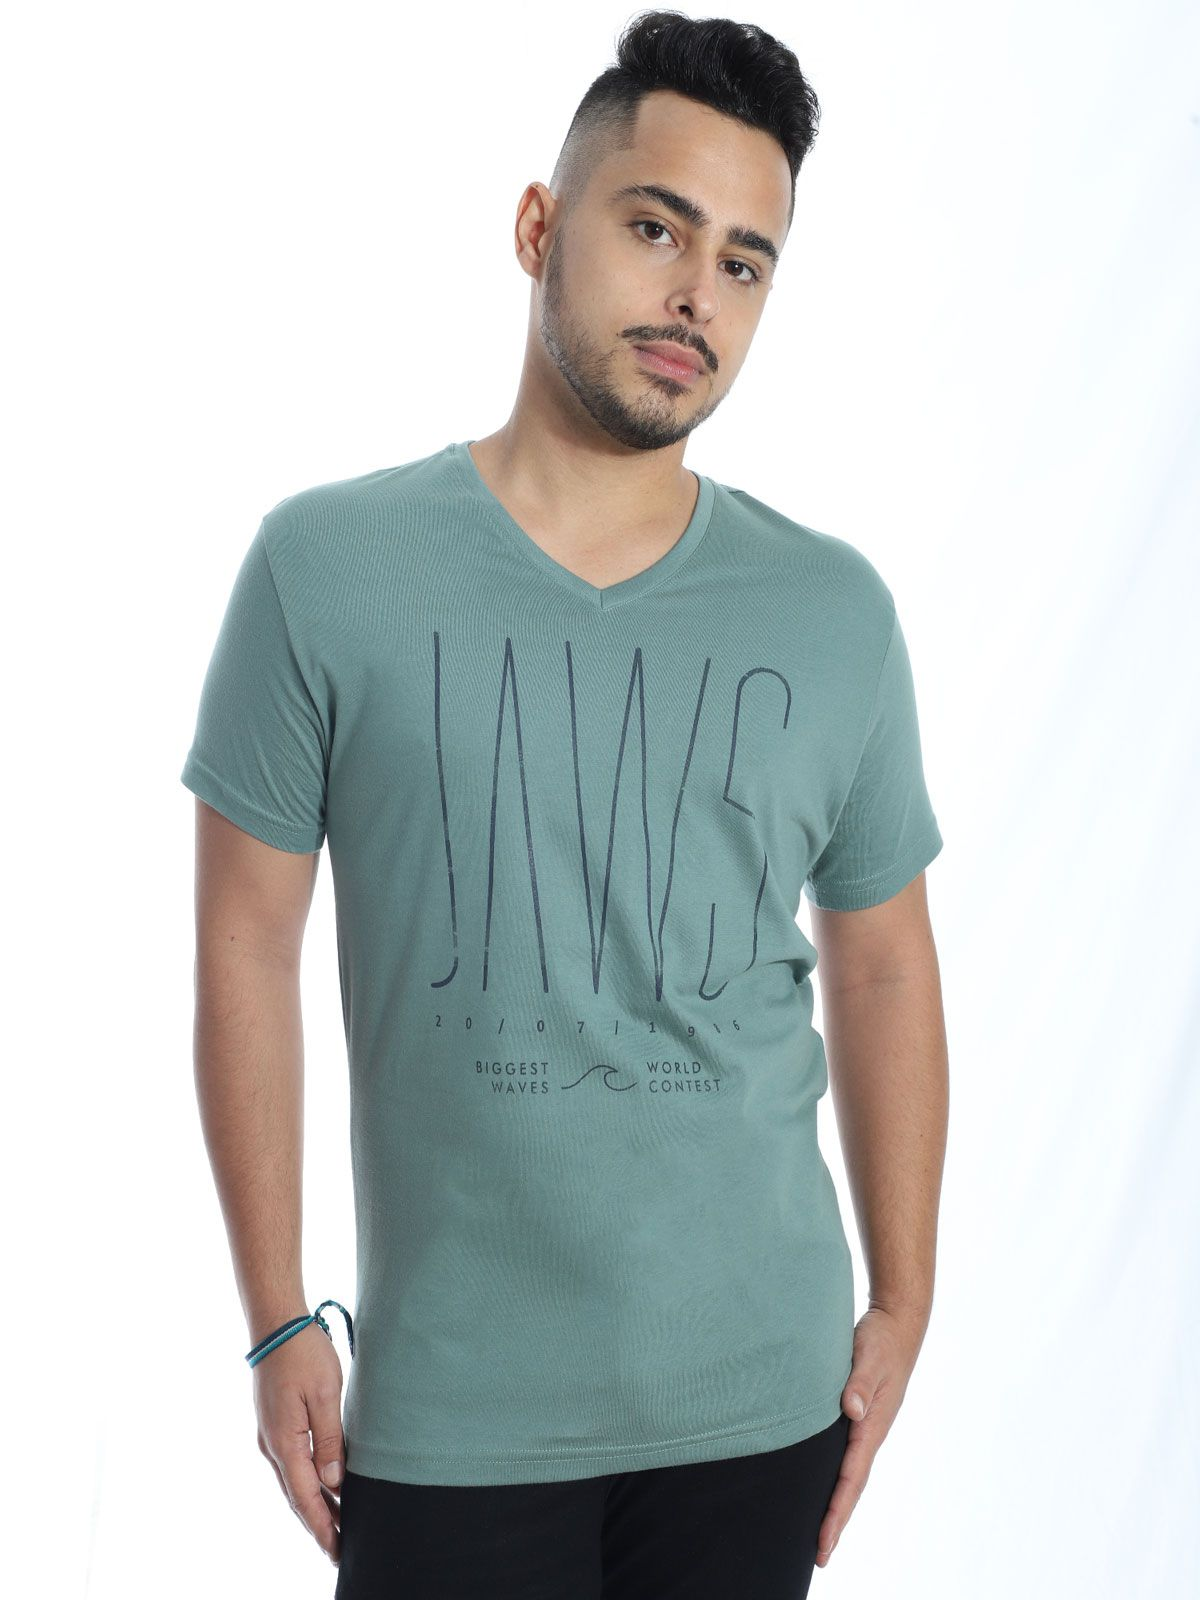 Camiseta Anistia Slim Fit Decote V. Contest Concreto